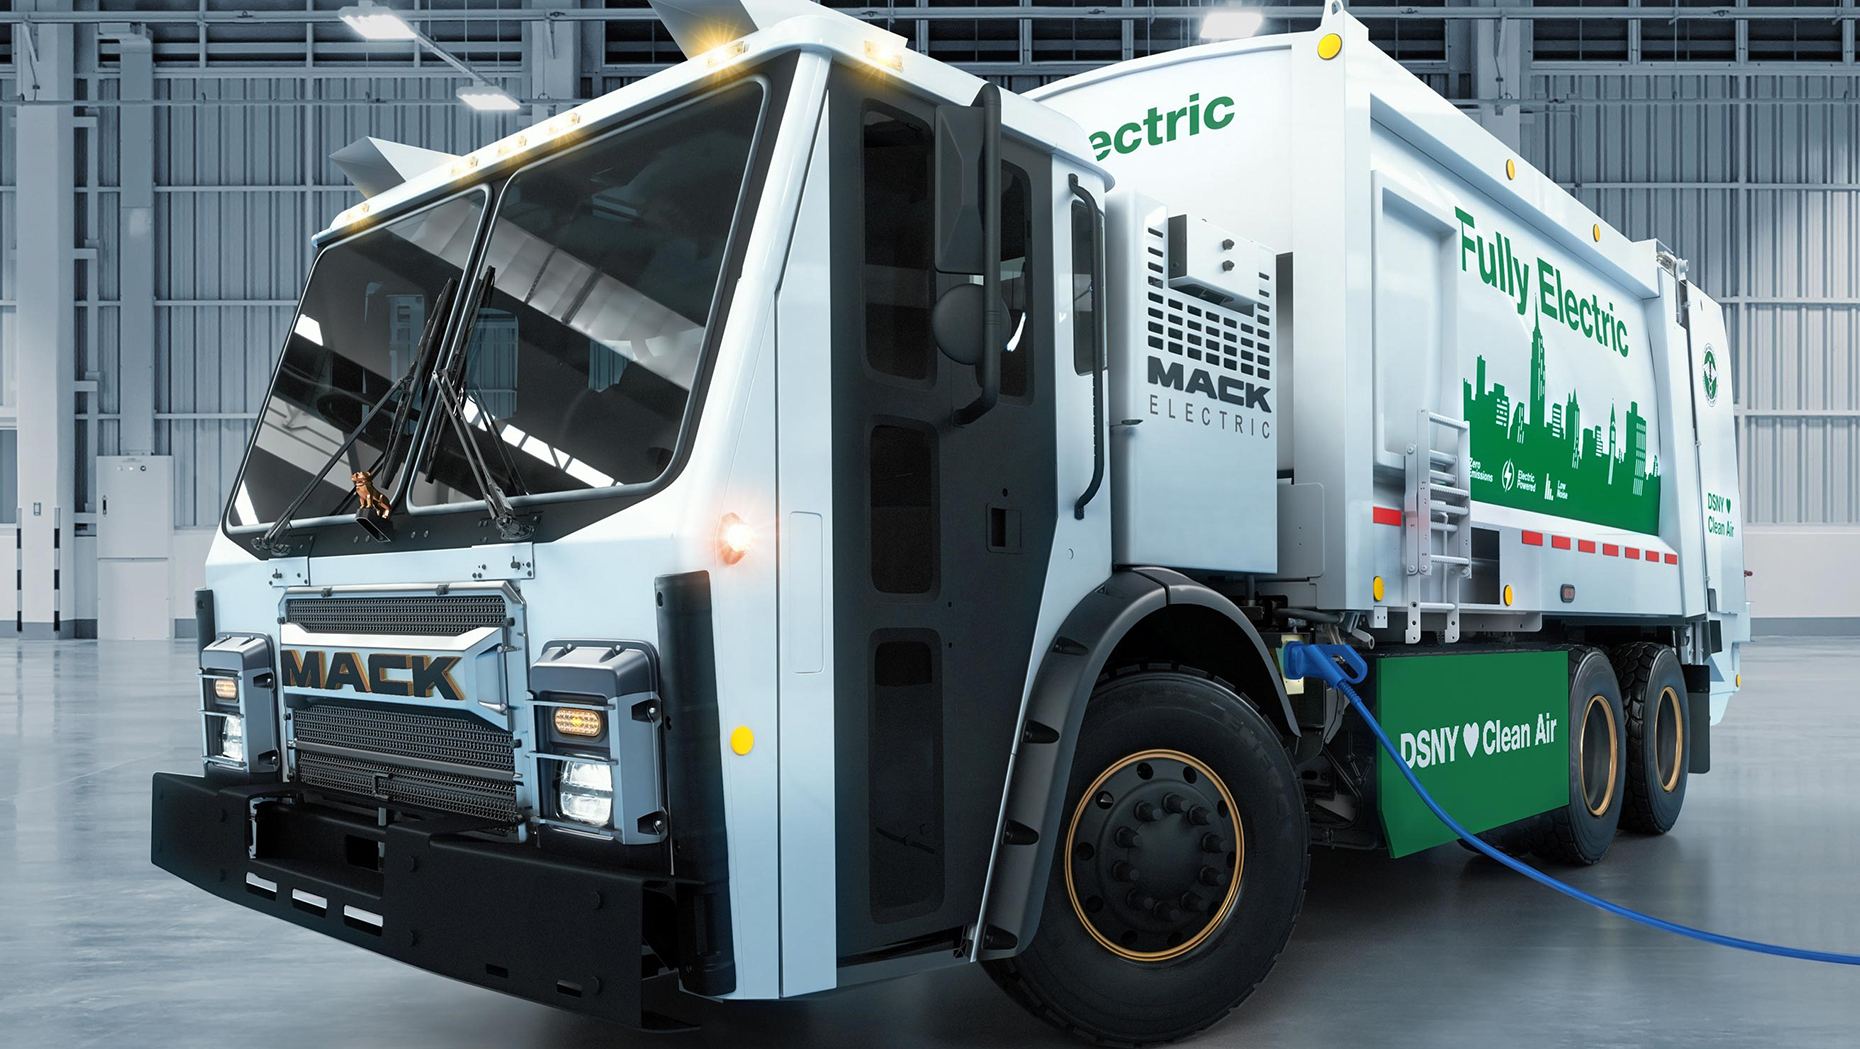 Fully electric Mack bin lorries will go on trial in New York next year to help cut emissions in the city